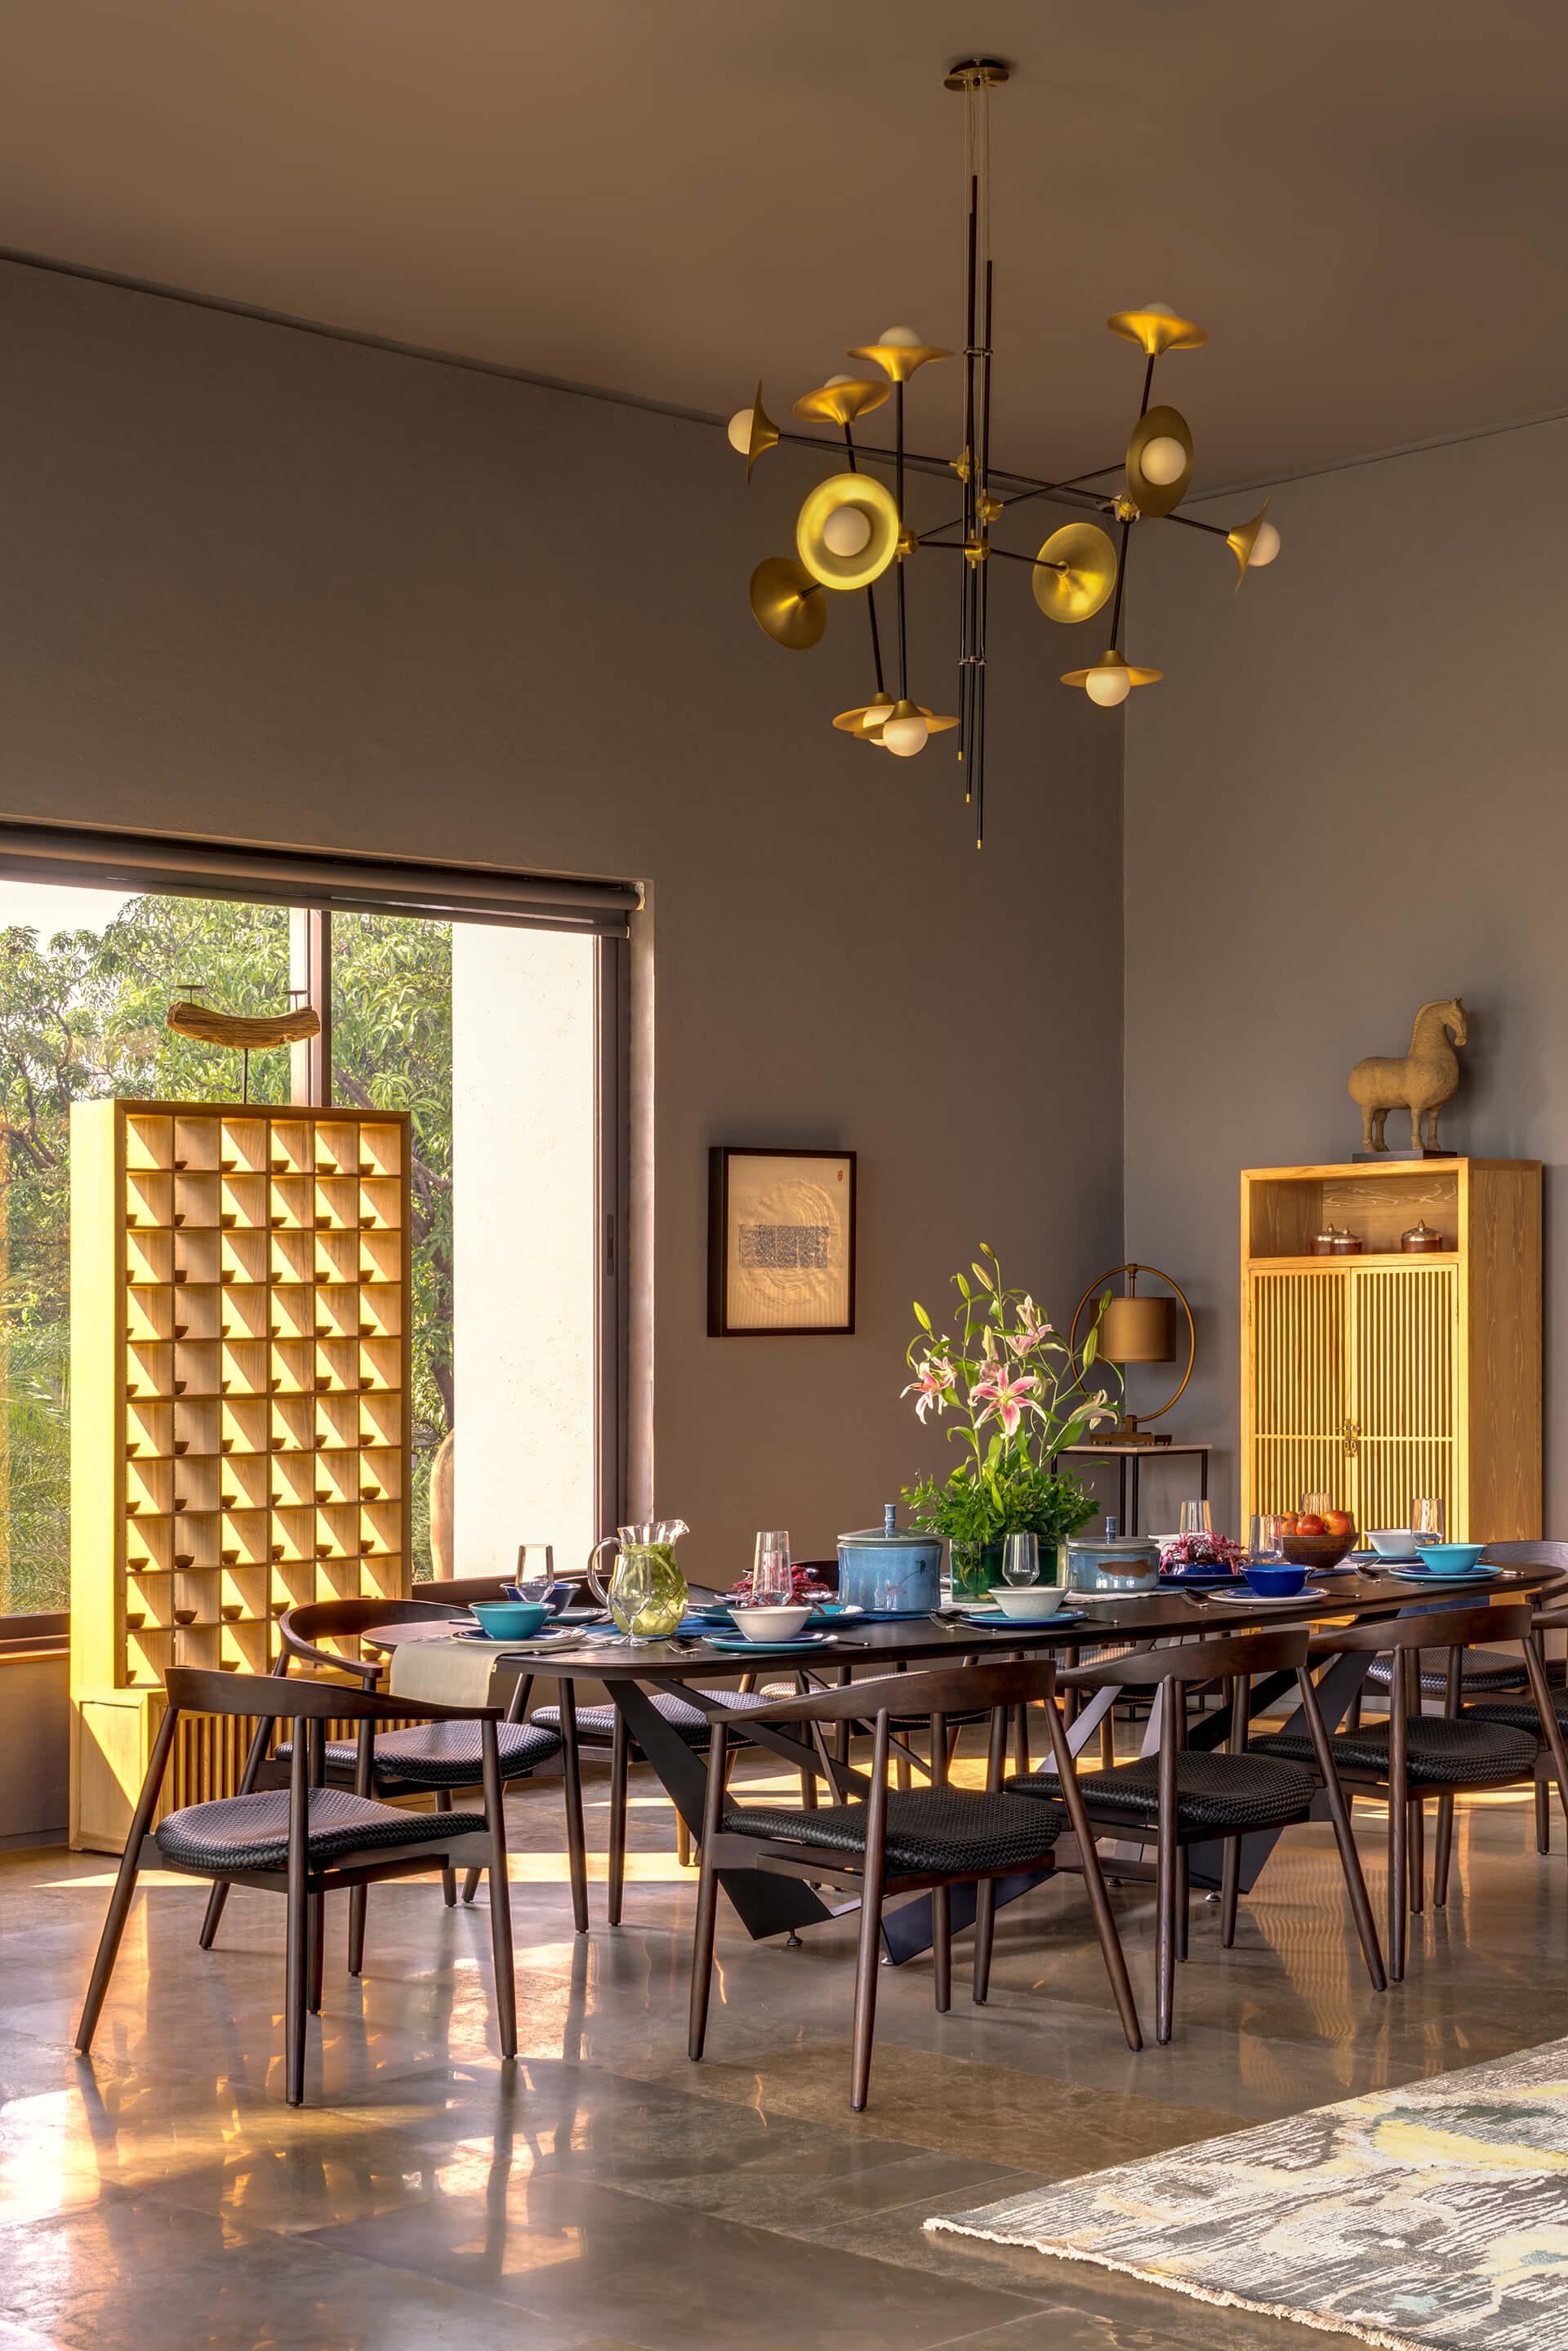 The dining spaces | Uminoya – Weekend home in Alibaug | Clay Architecture and Interiors | STIRworld